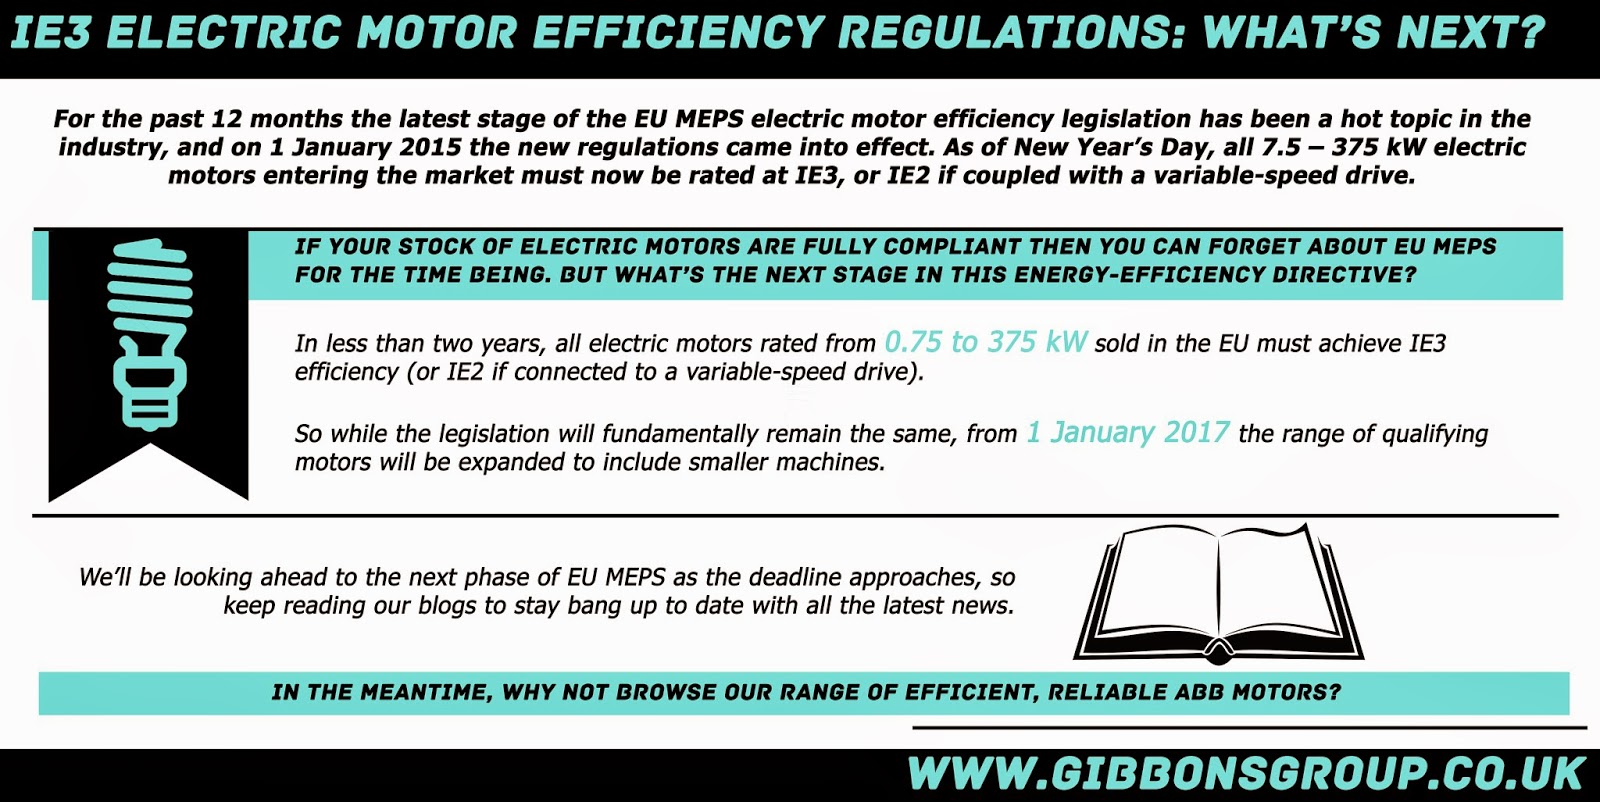 IE3 electric motor efficiency regulations: What\'s next? - The ...